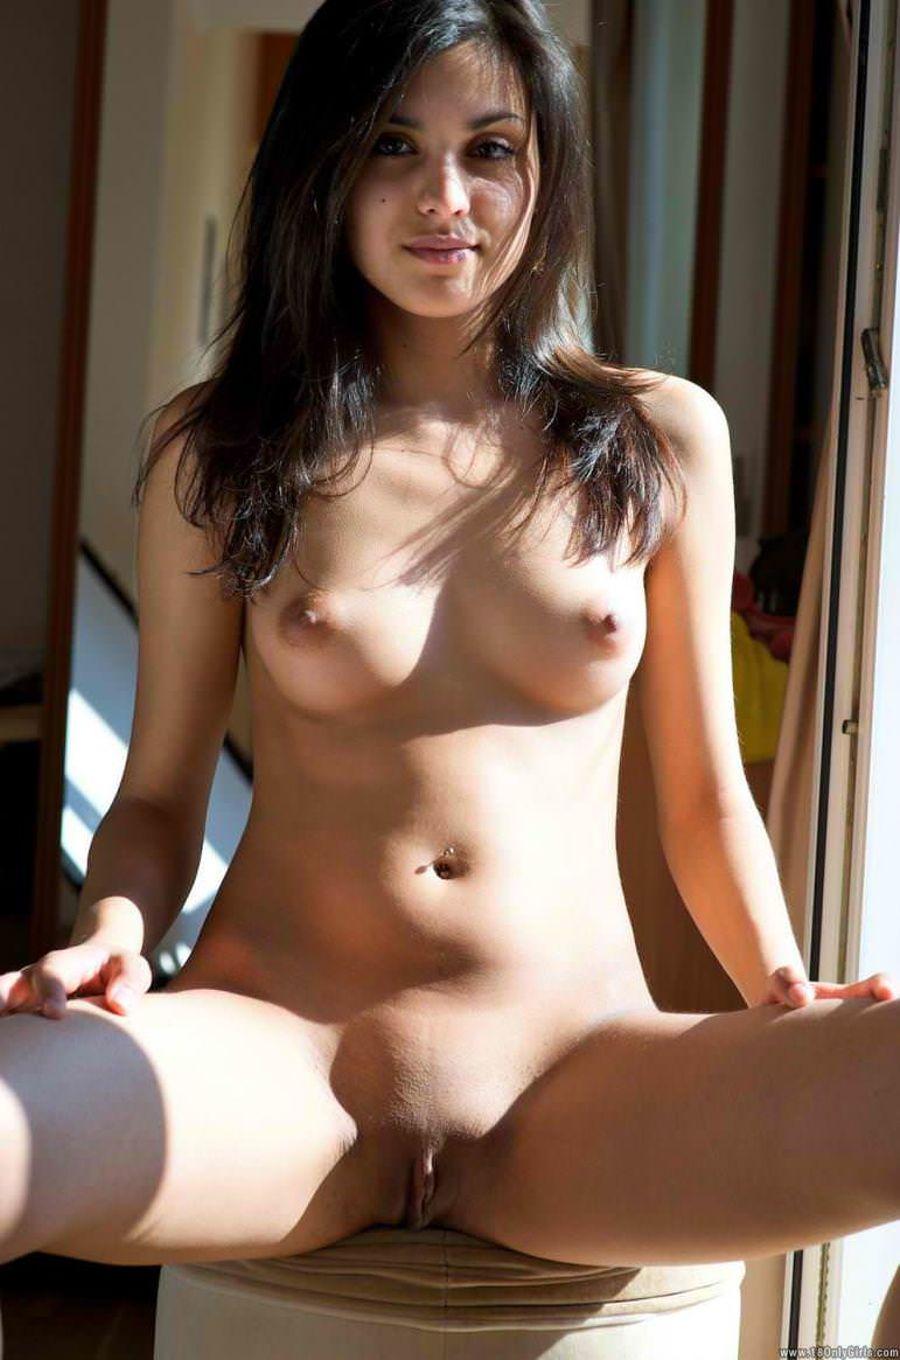 Beauti young body girl xxx hd pics, uk naked hot men